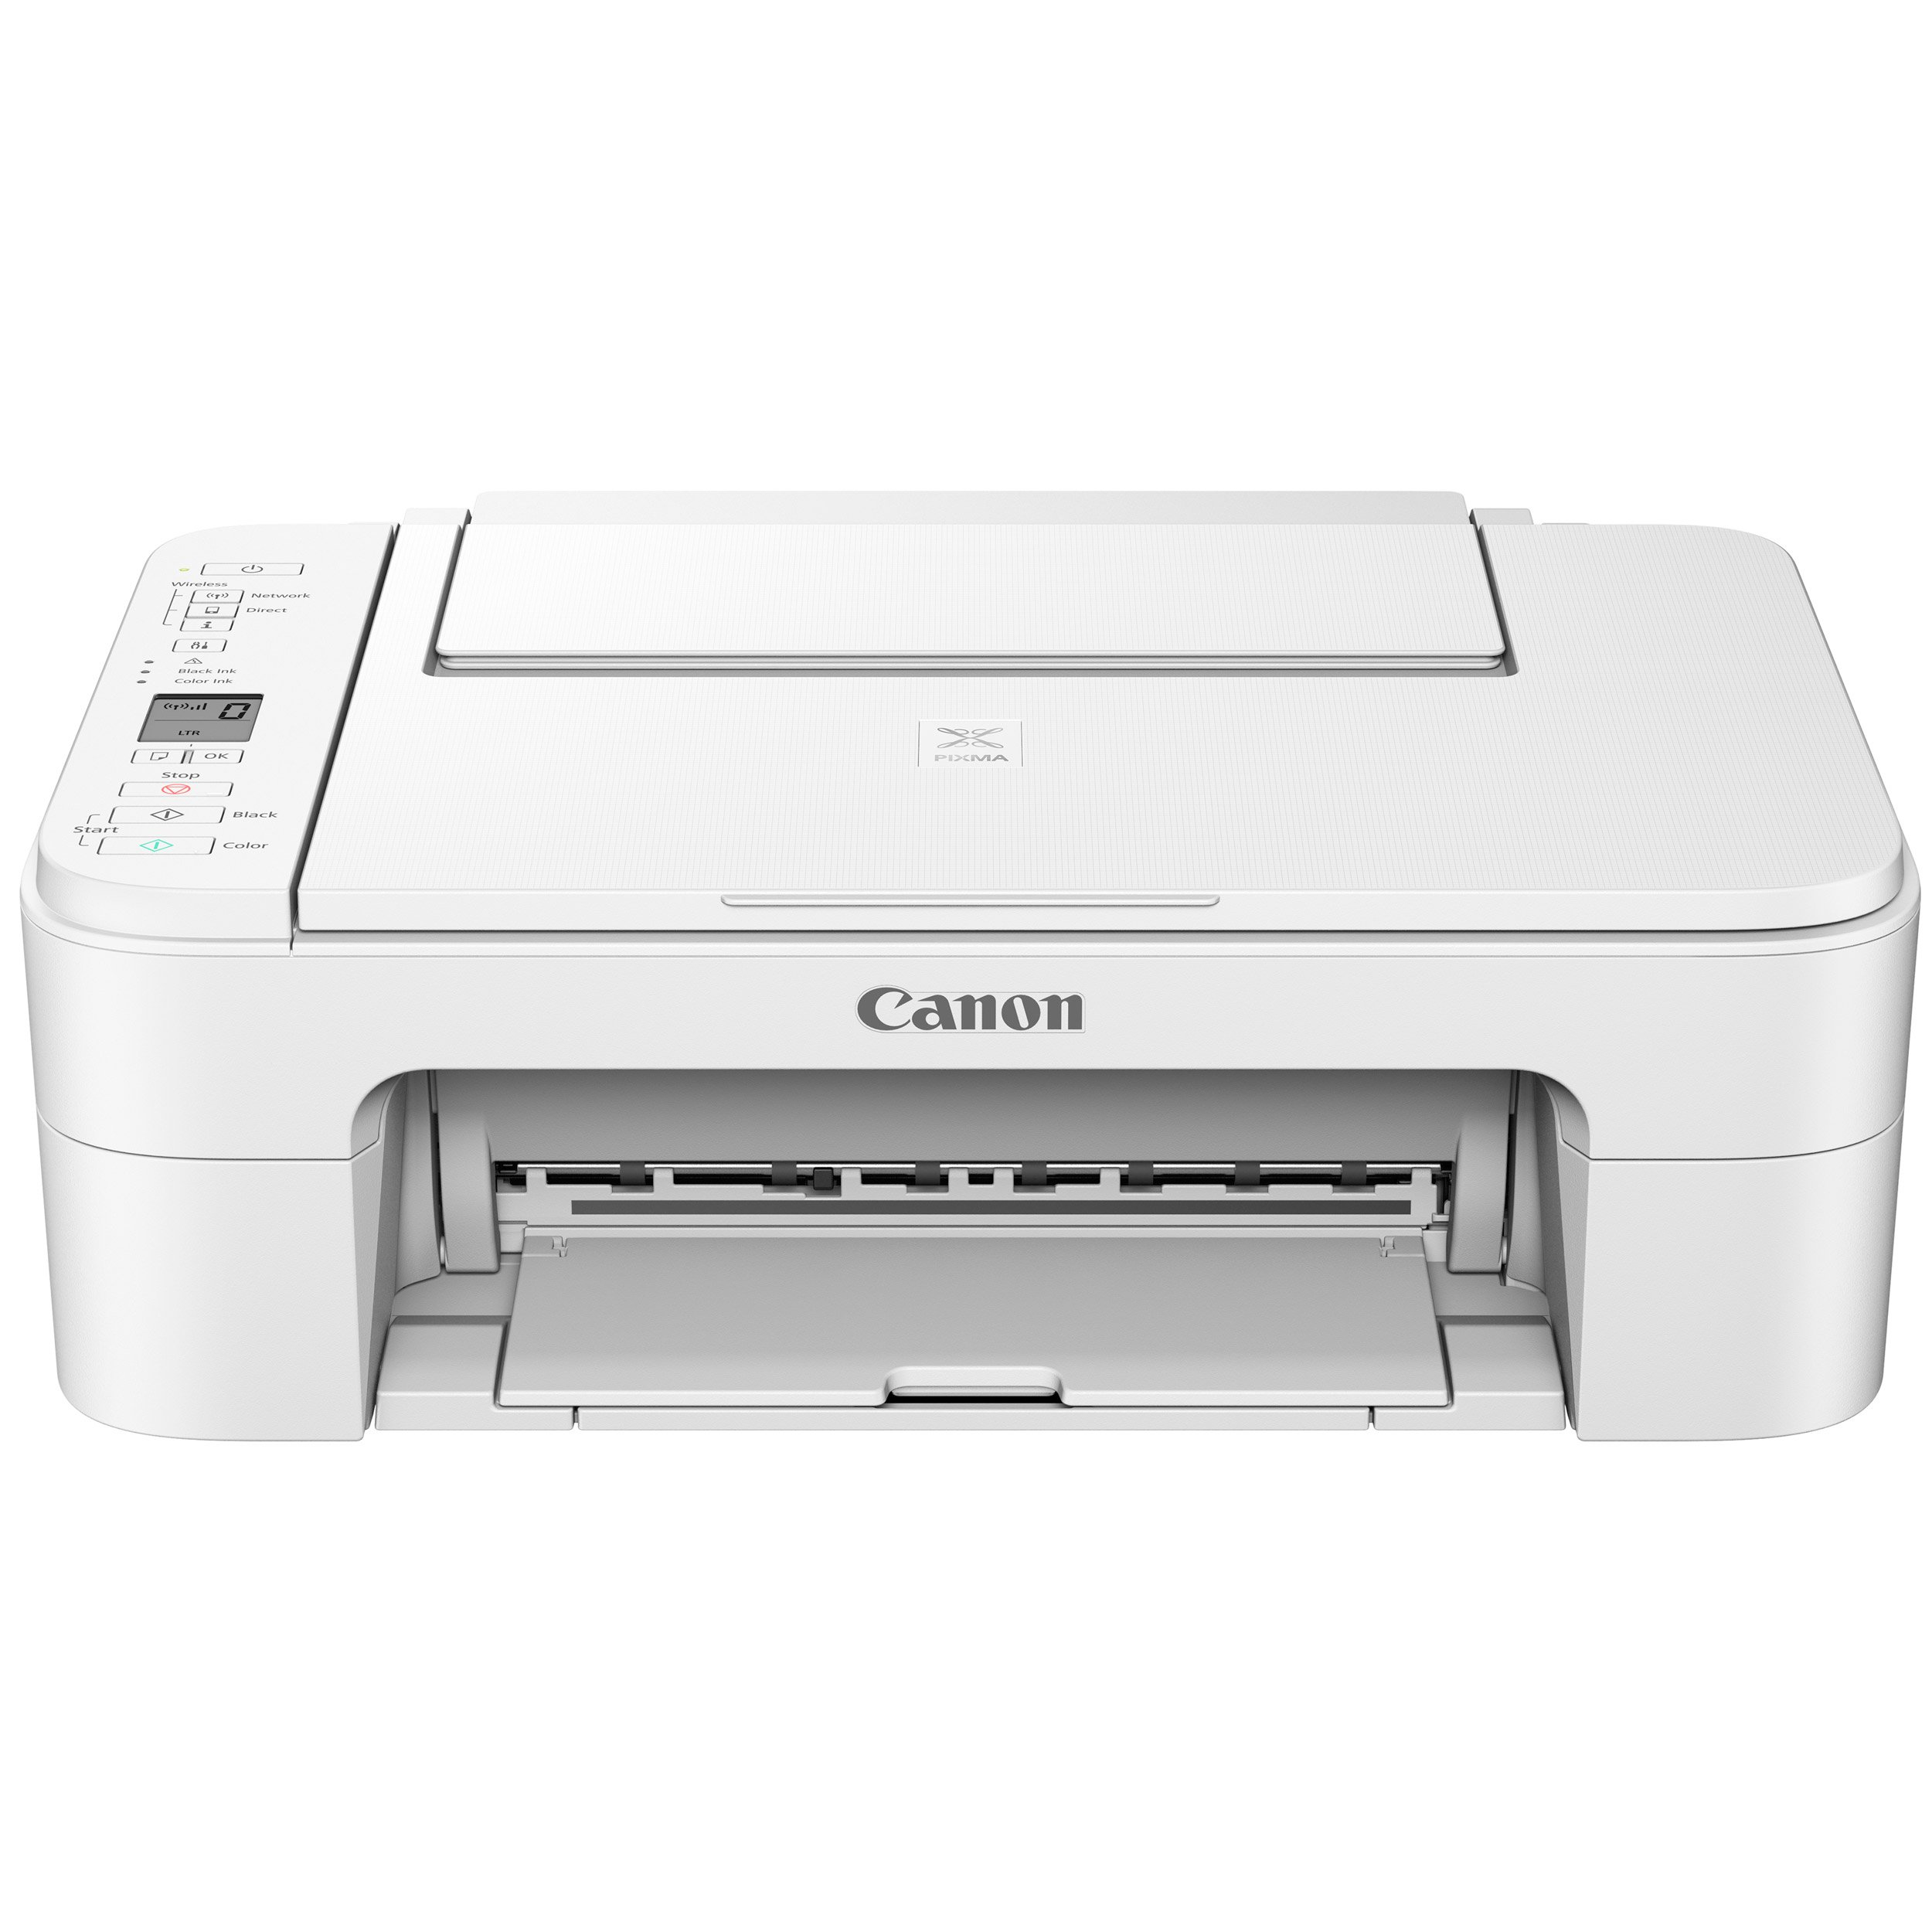 Canon TS3120 Wireless All-In-One Printer, White by Canon